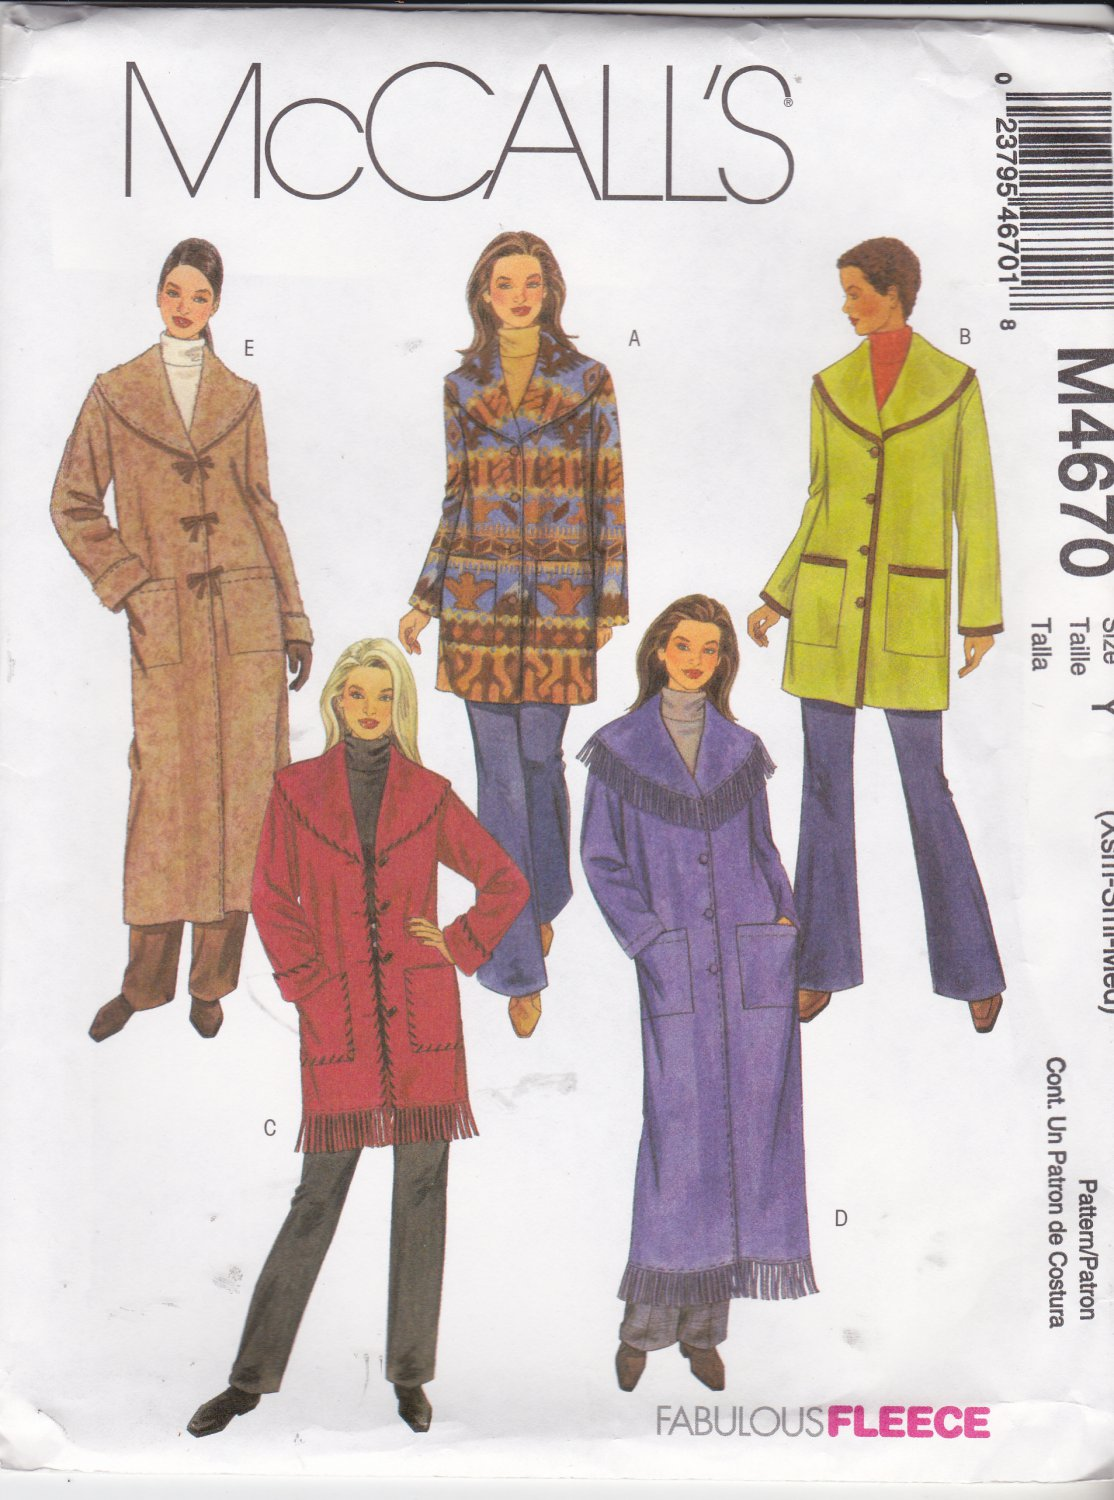 McCall's Sewing Pattern 4670 Misses Size 4-14 Fleece Wool Unlined Button Front Jackets Coats